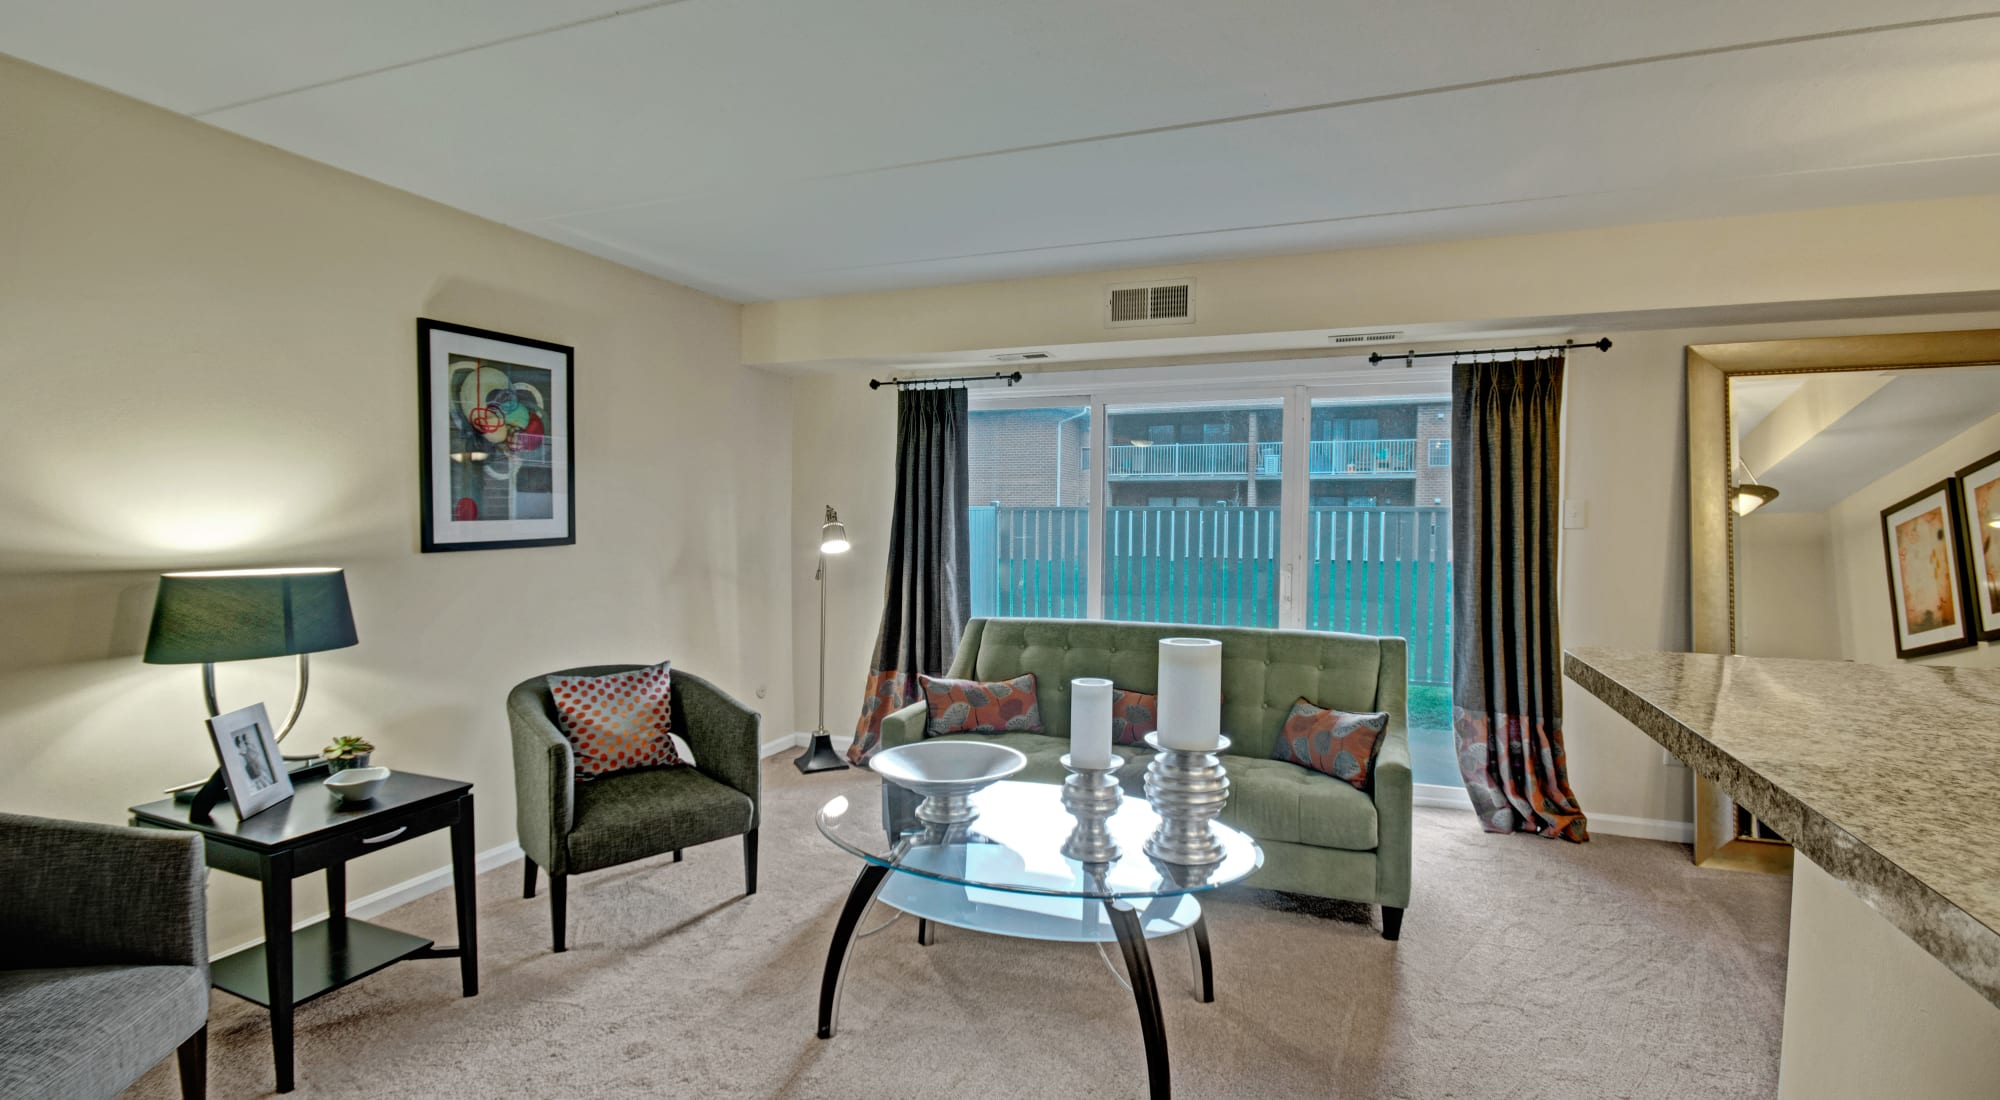 Photo gallery at Racquet Club Apartments and Townhomes in Levittown, Pennsylvania